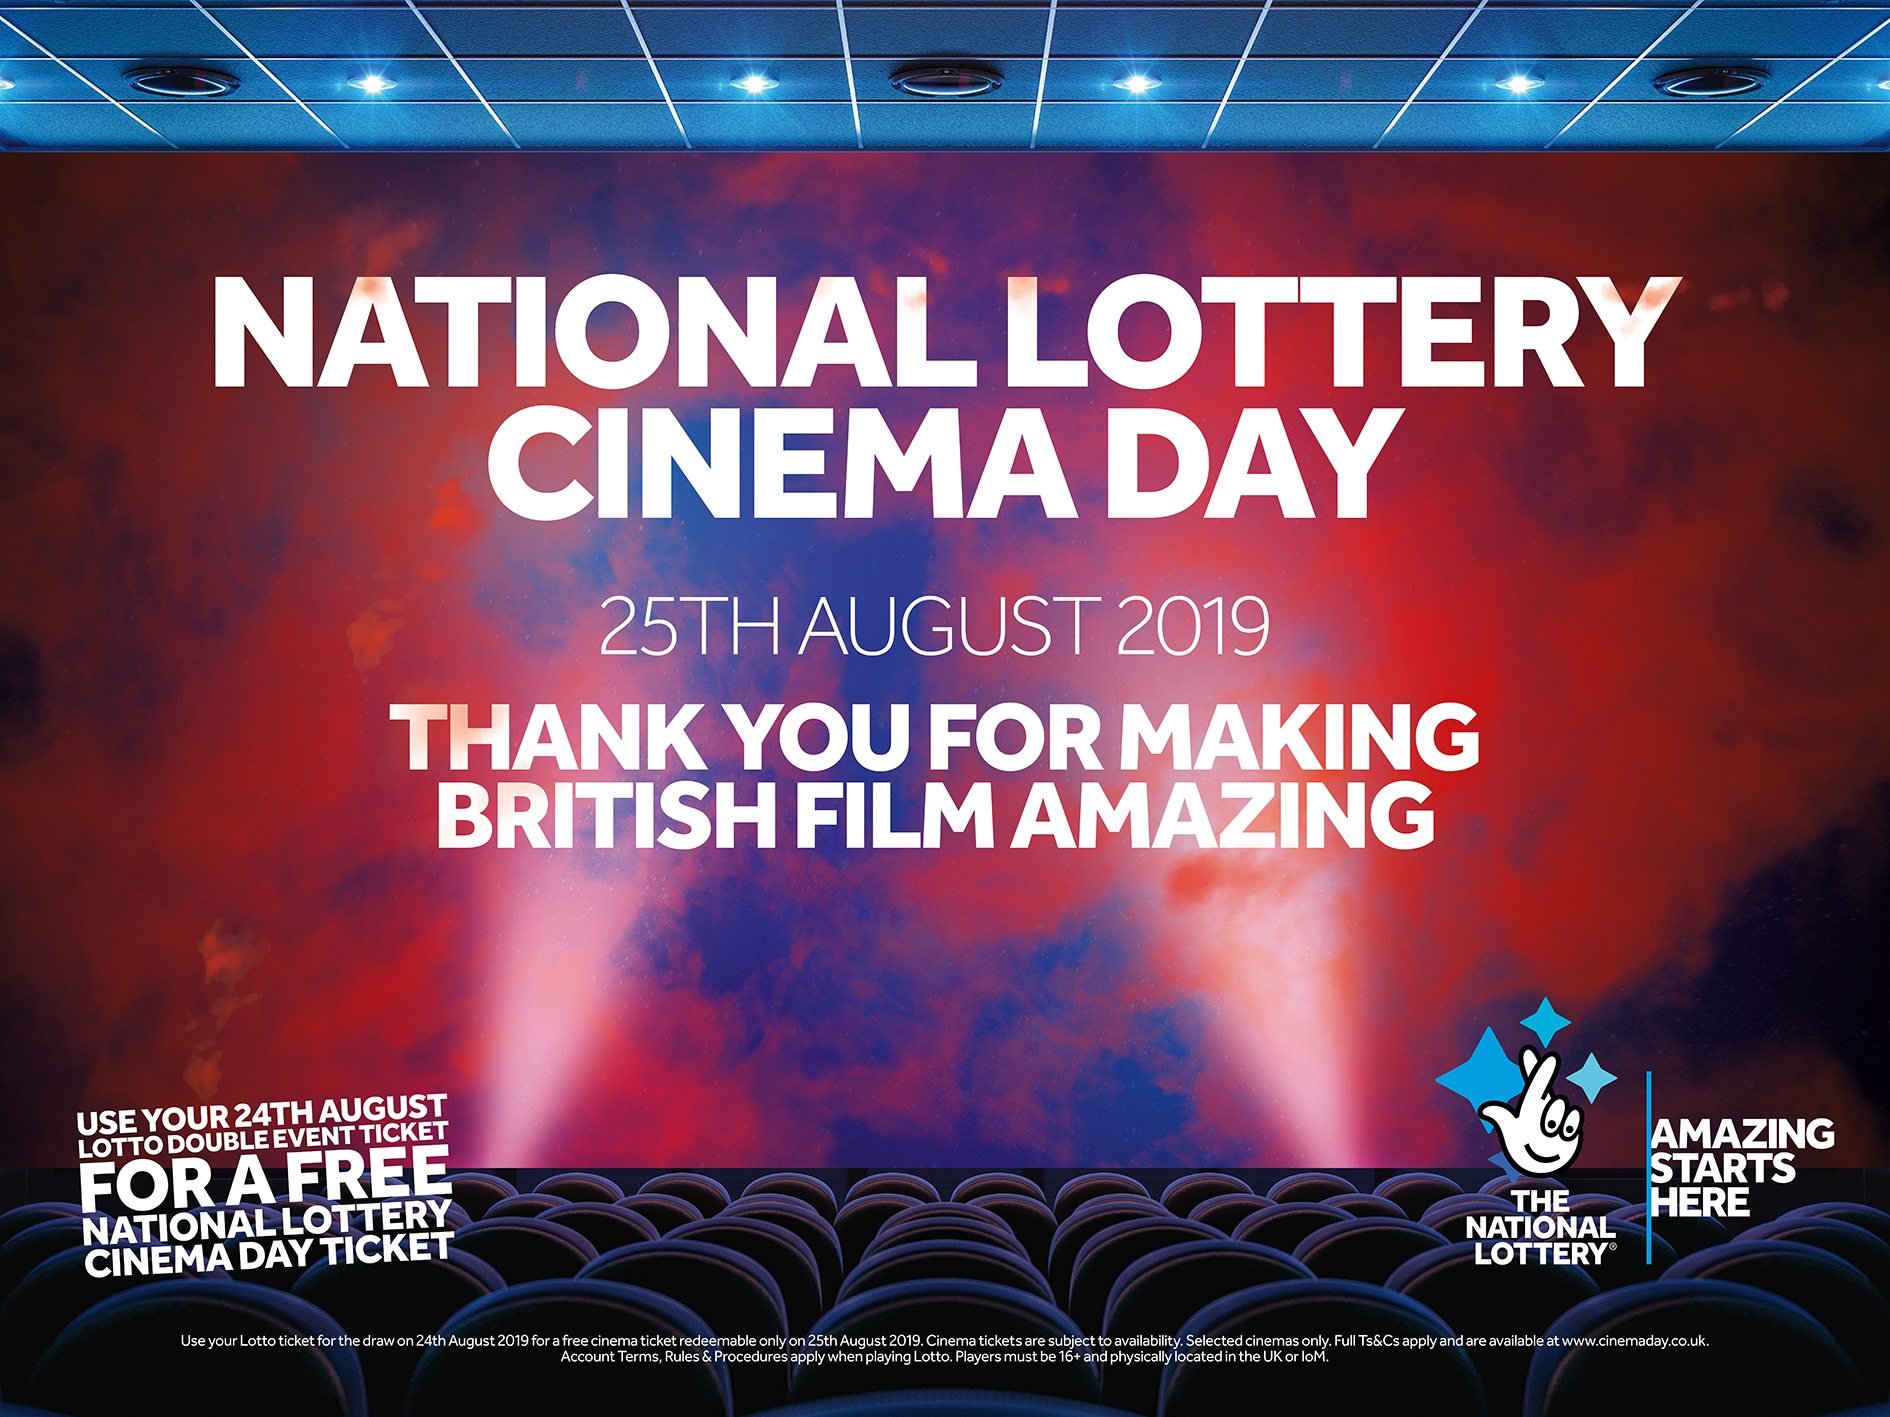 National Lottery Cinema Day 2019